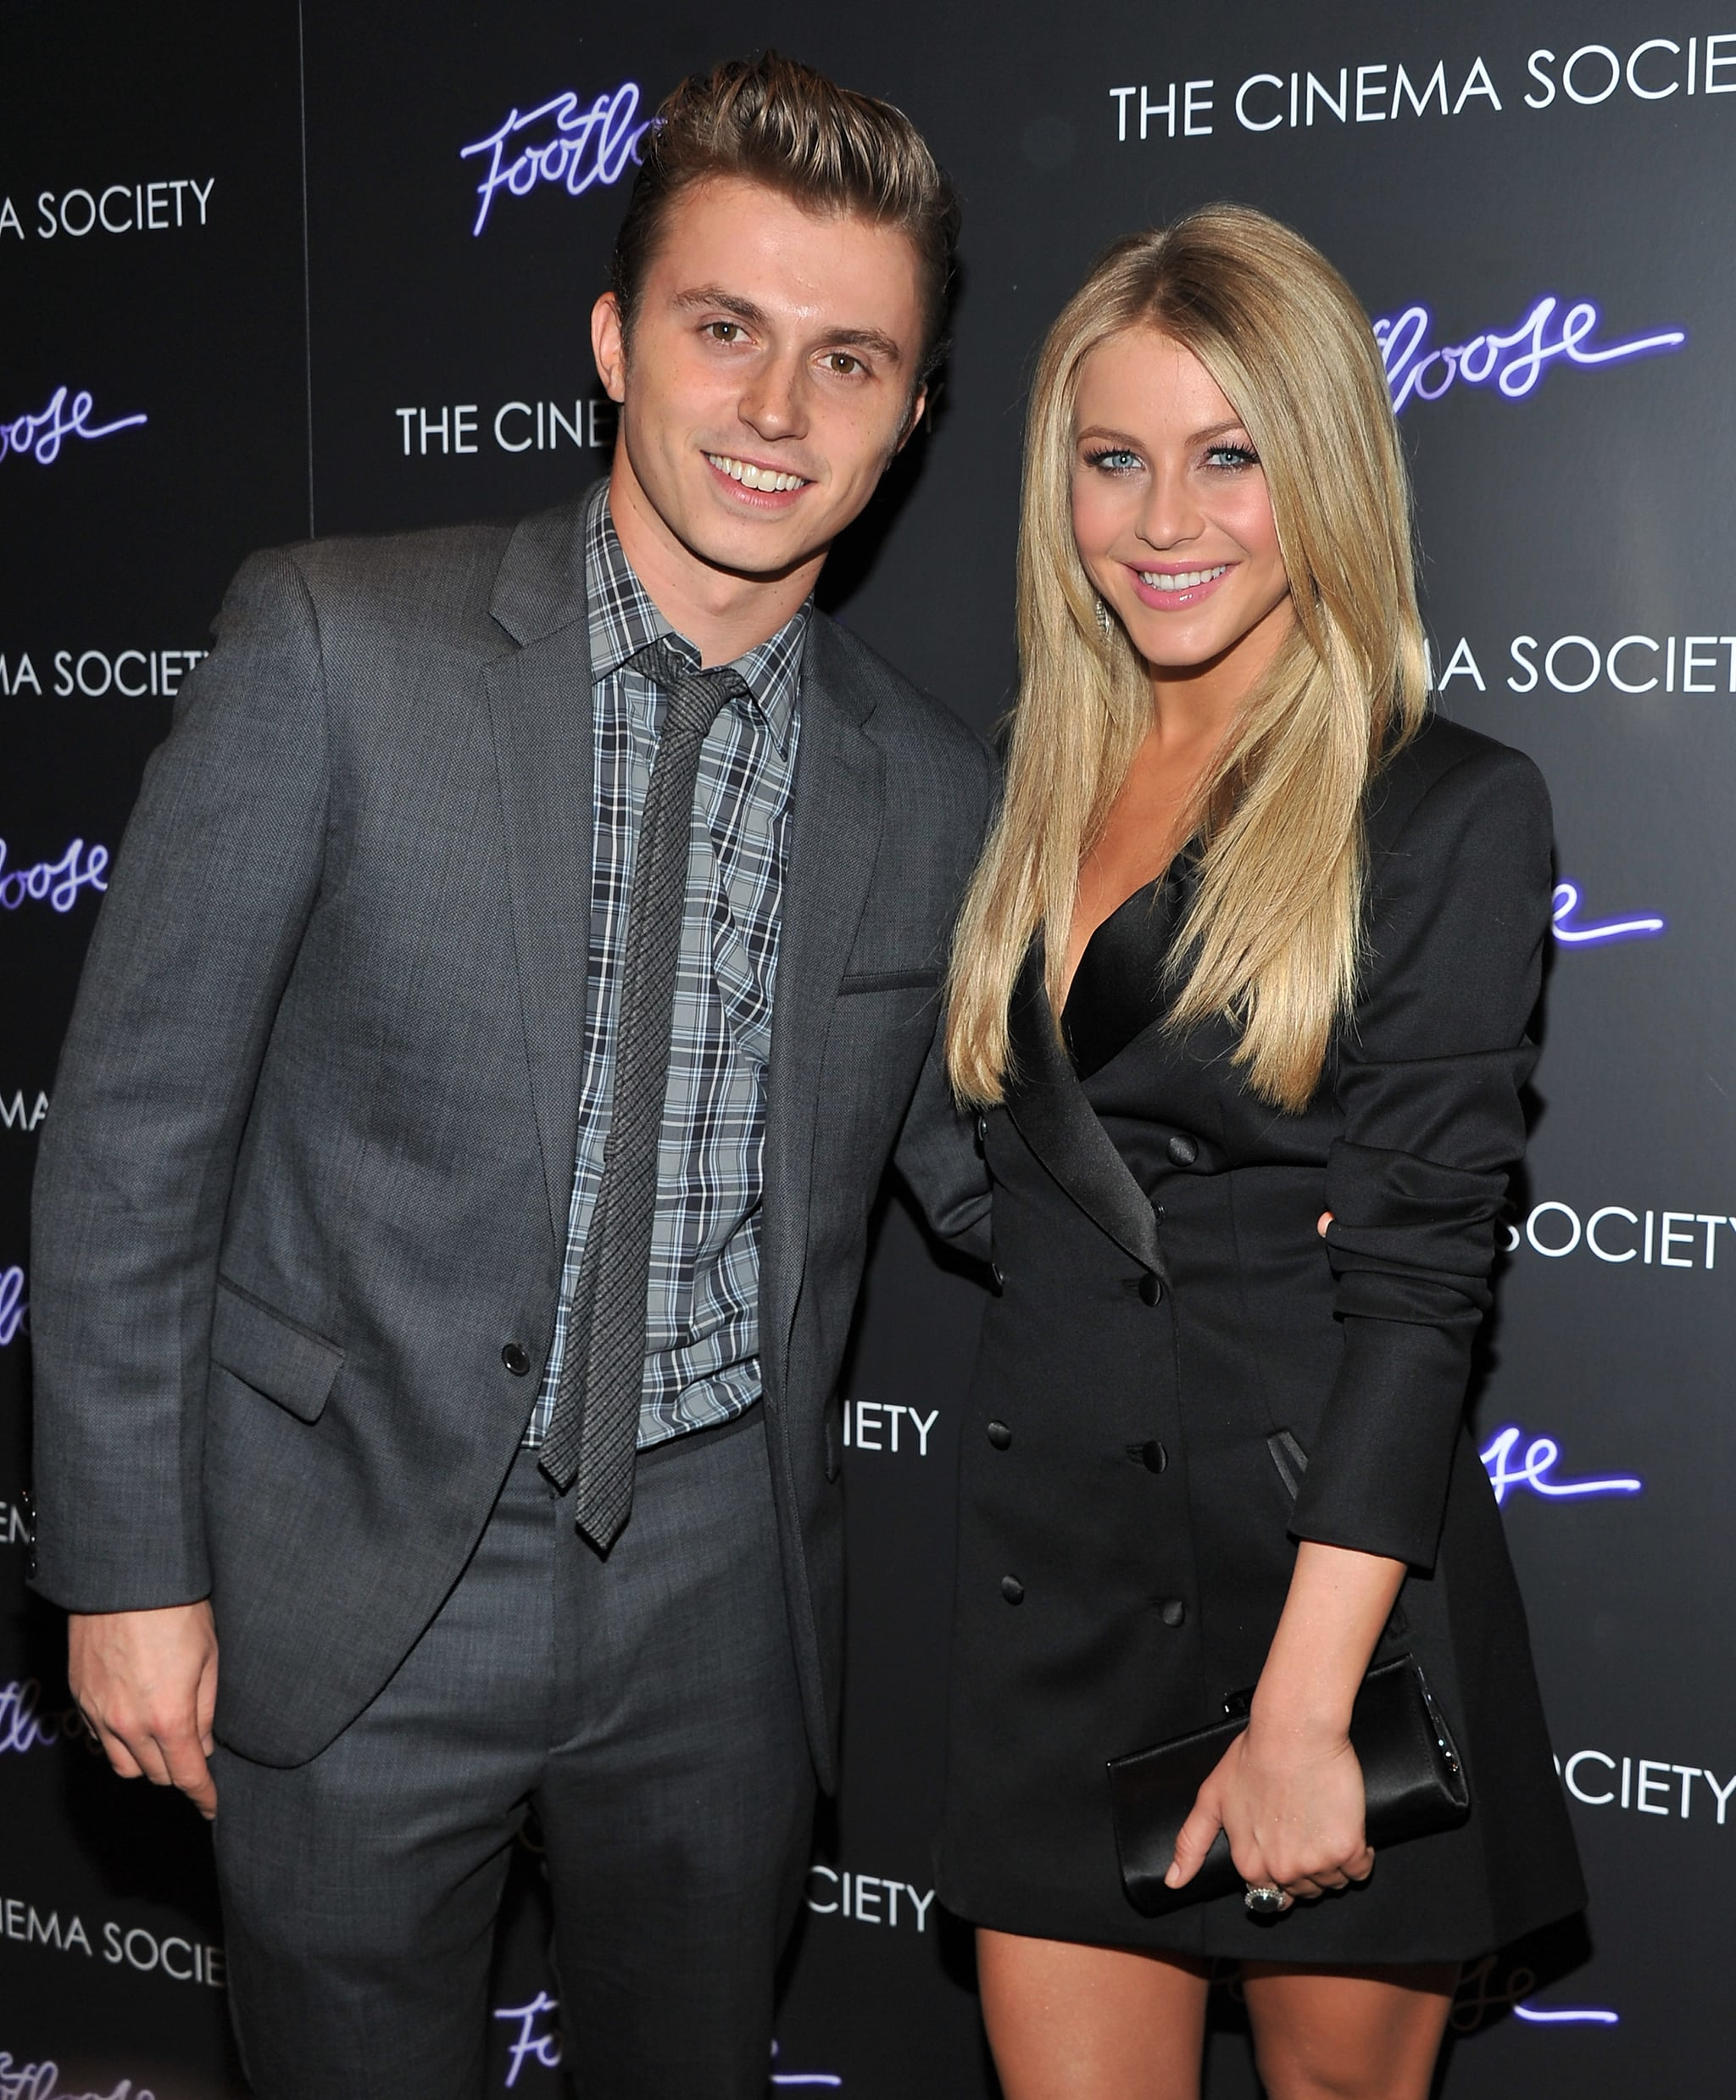 Julianne Hough And Kenny Wormald Smiled For Cameras At The